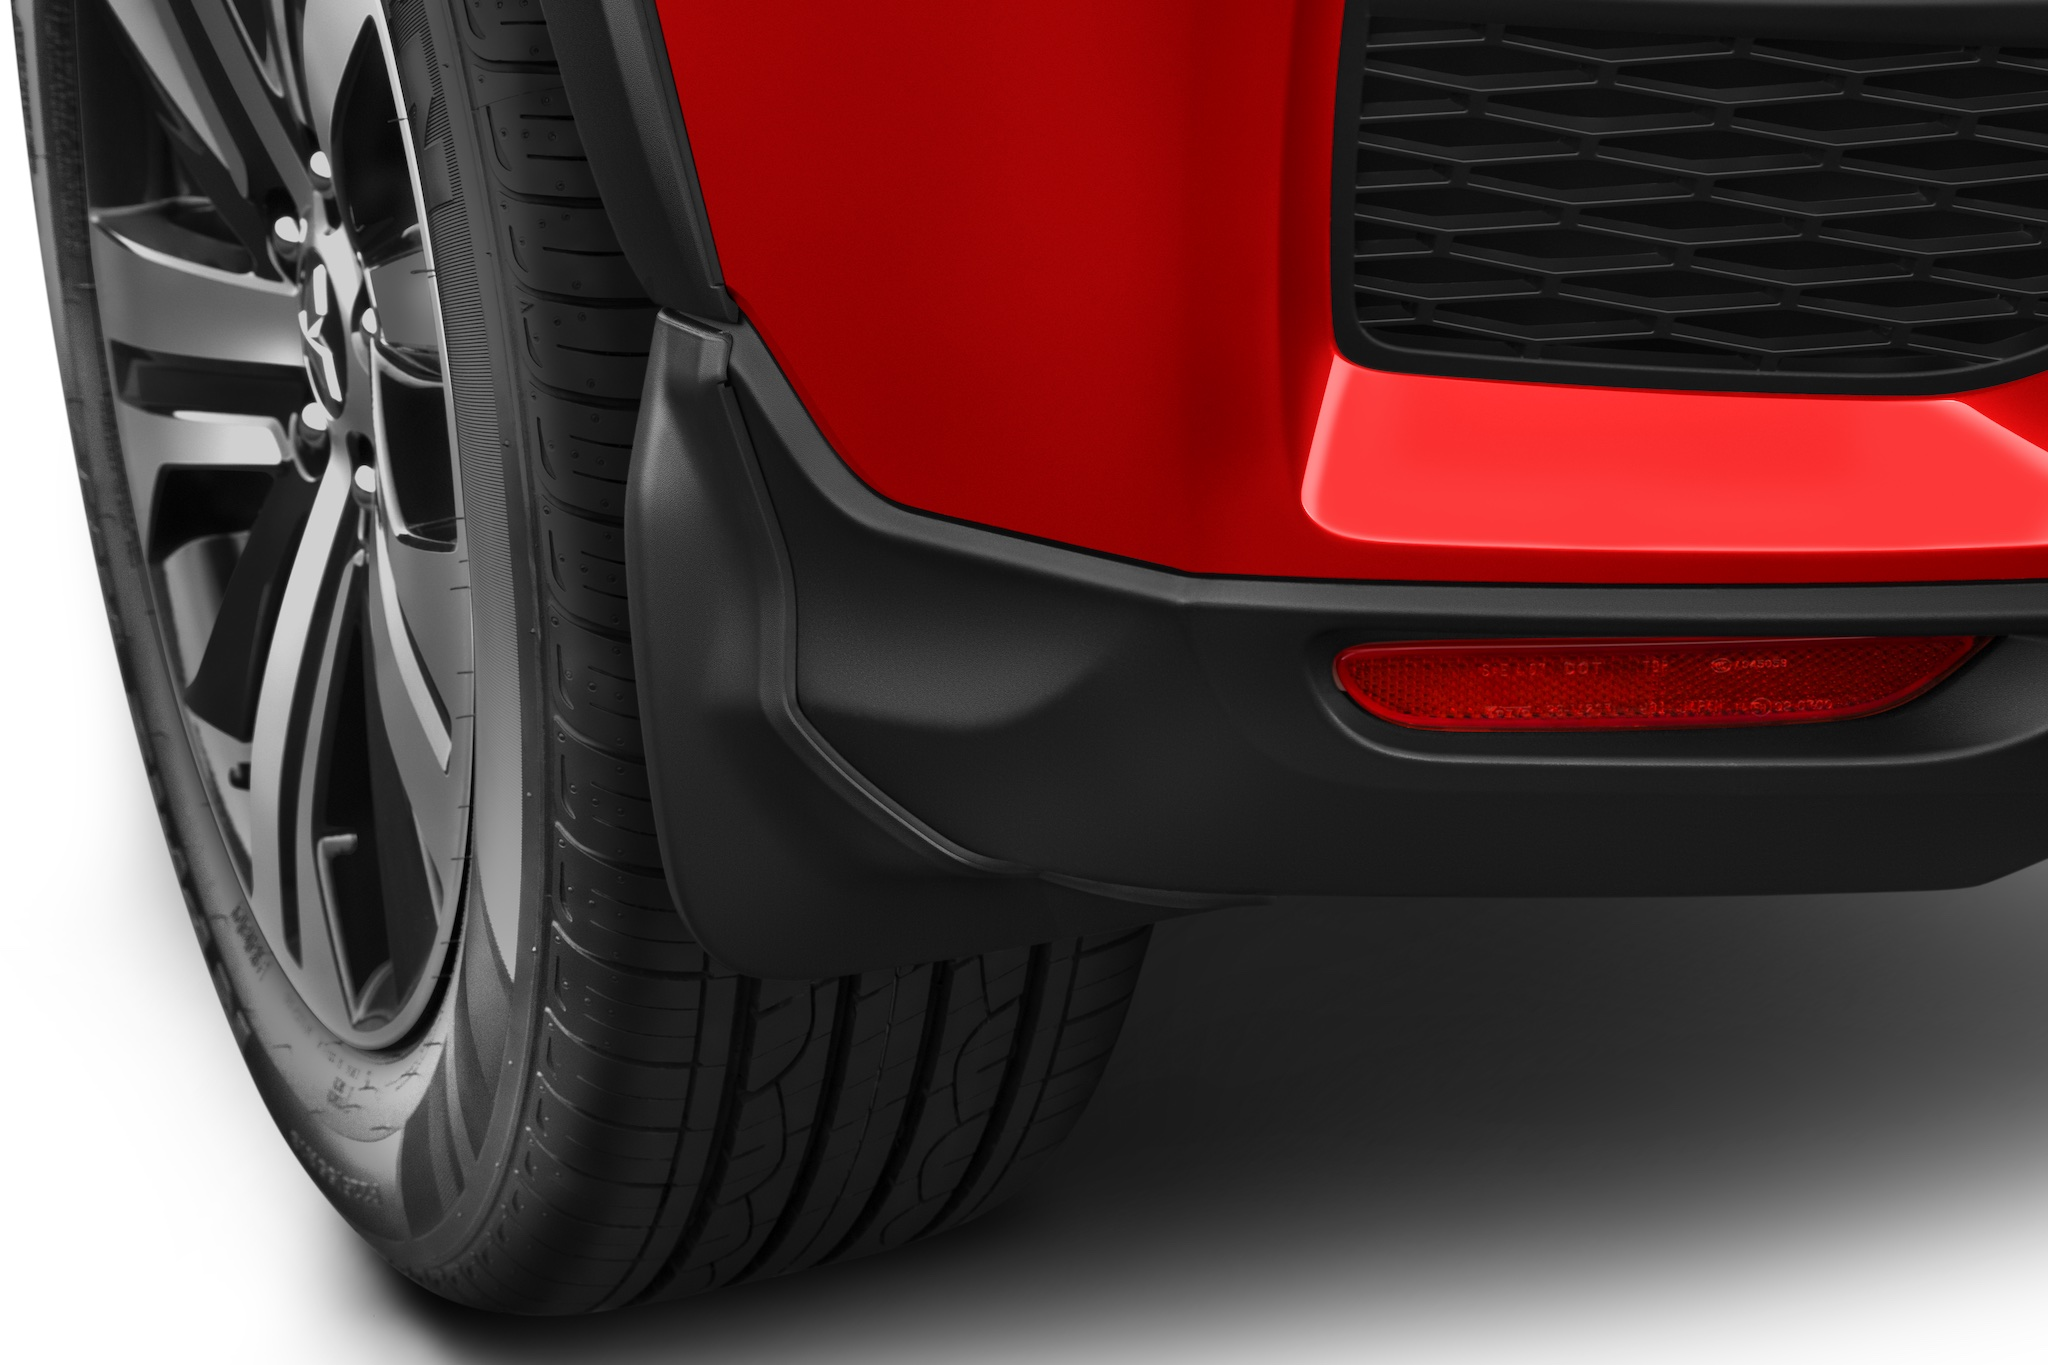 Mud Guards (Front and Rear)